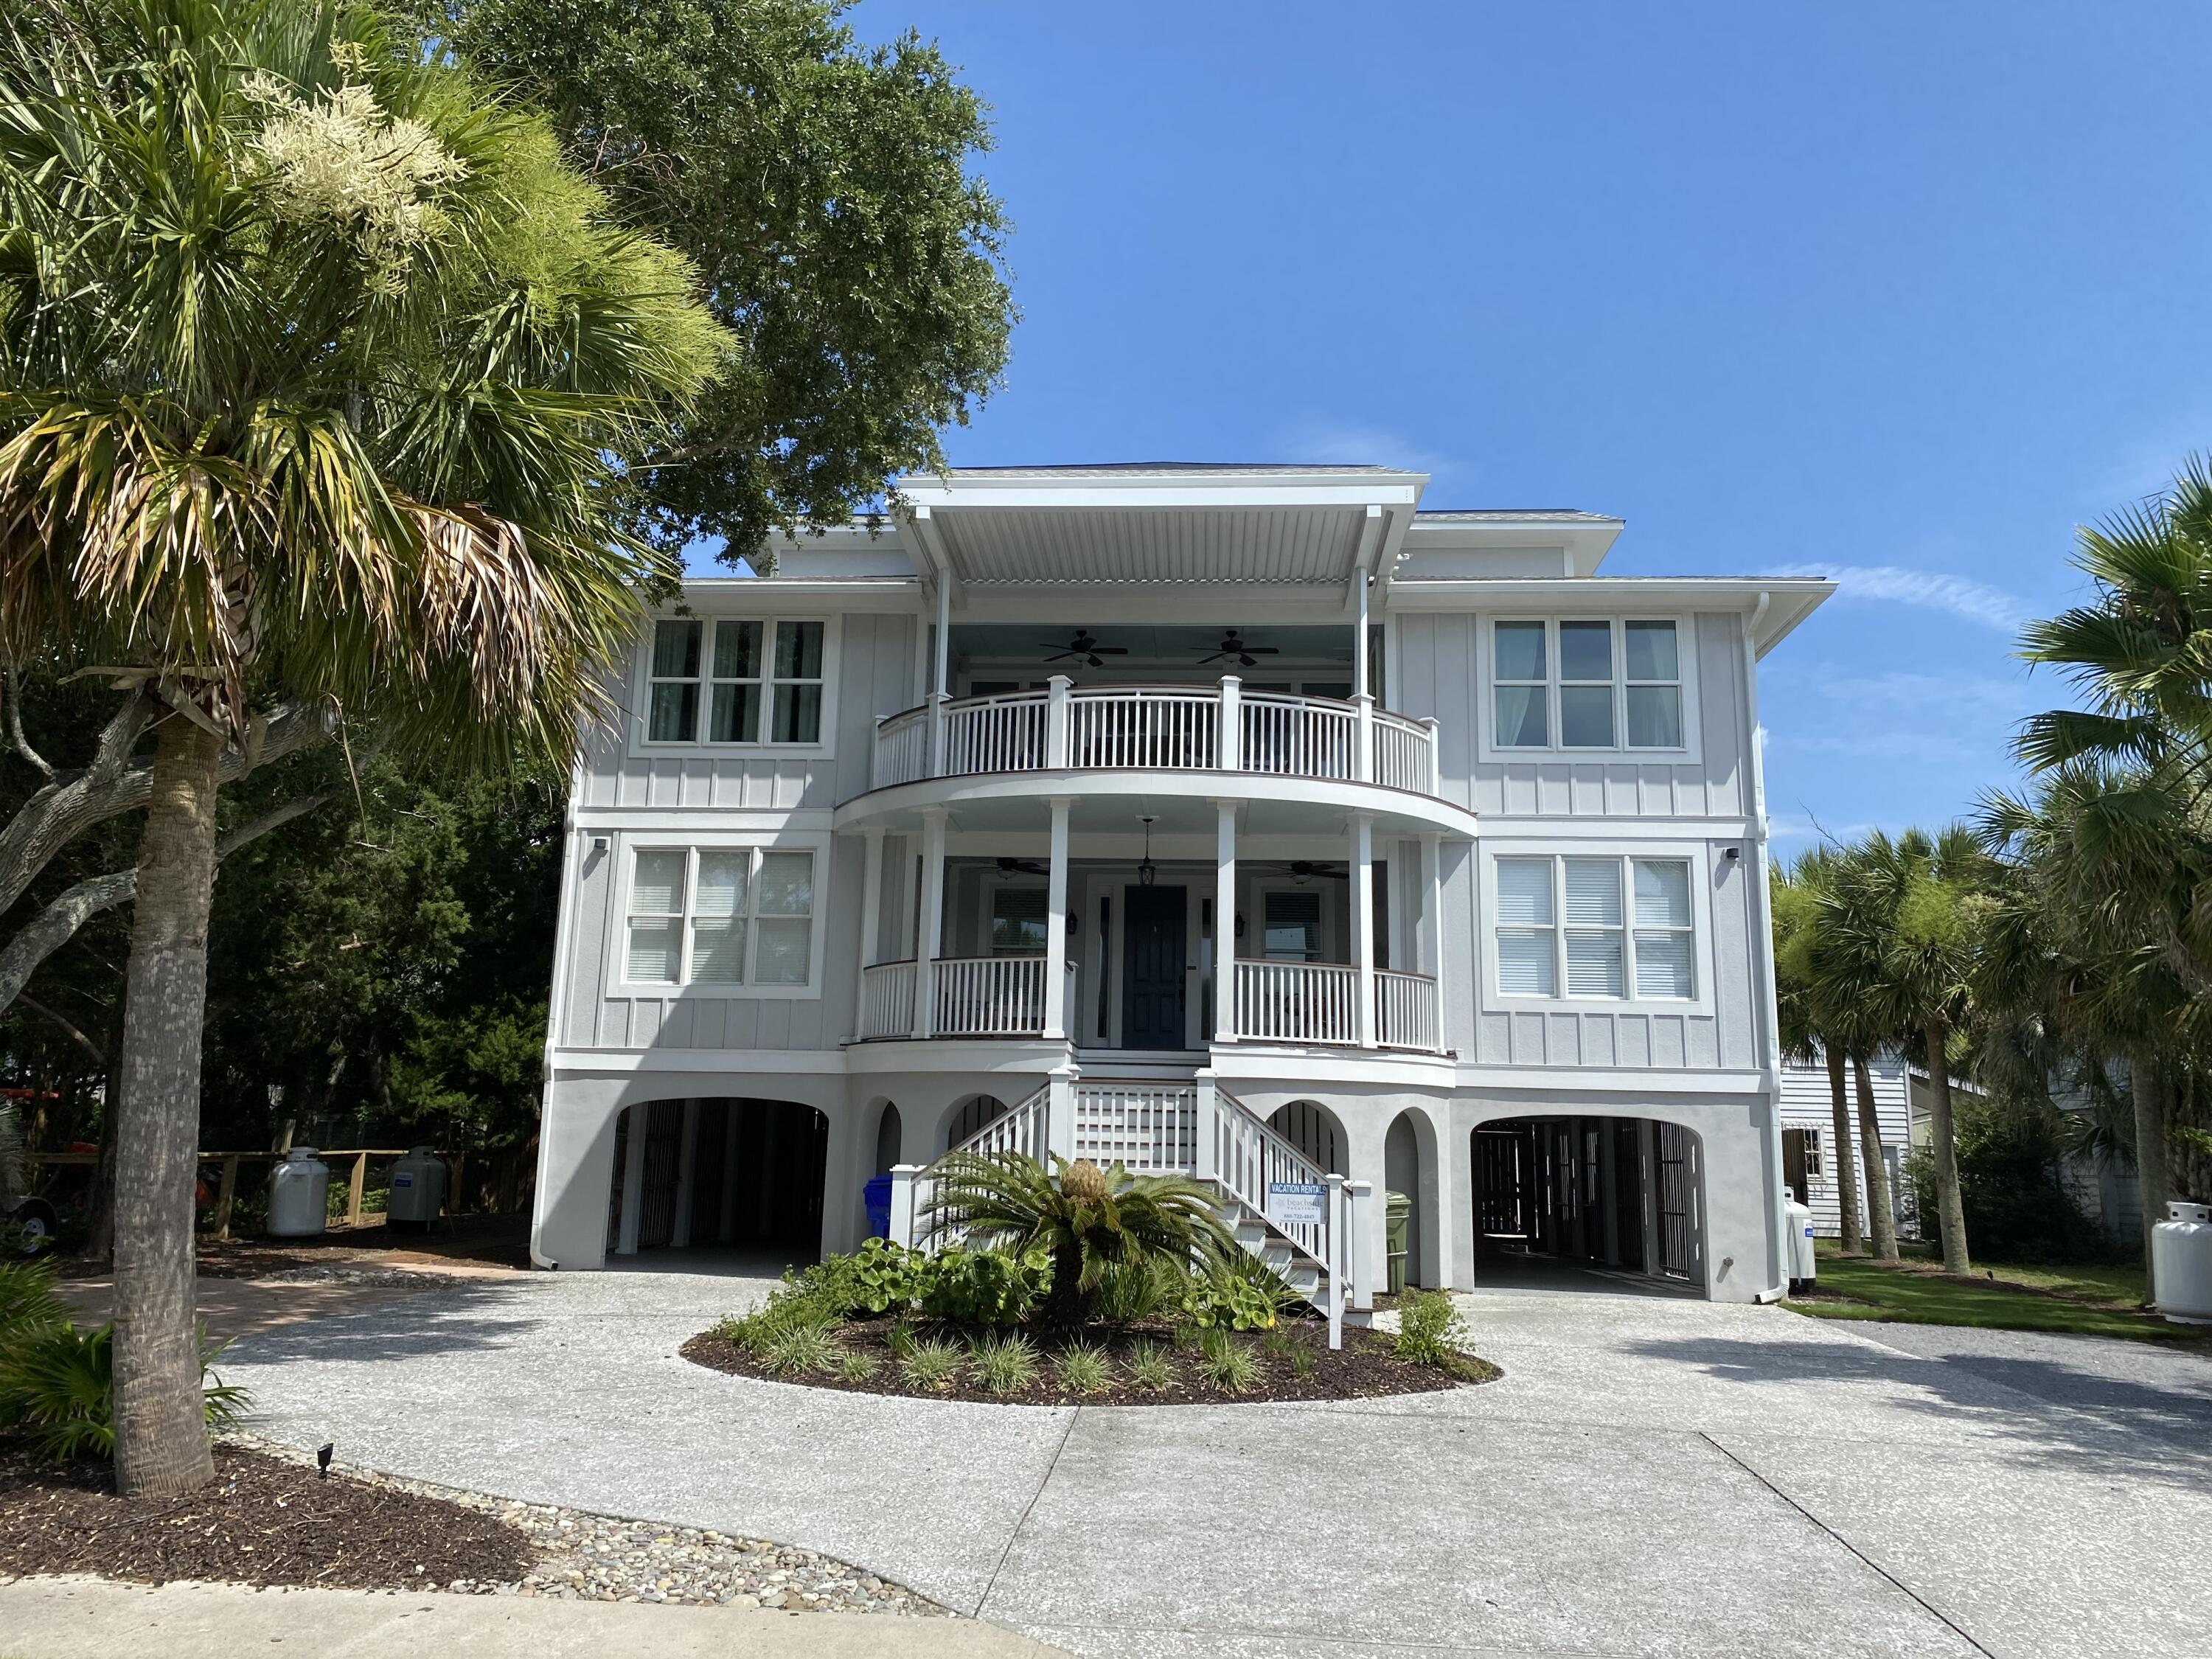 3705 Palm Blvd was completely renovated in 2018 with great Atlantic Ocean views and steps to the beach.  Home features ocean views from multiple decks, a brand-new private swimming pool with built in hot tub, game room, two living rooms and a brand-new kitchen featuring many top of line appliances.  Here are just a few highlights of the renovations: Removal of the swimming pool with the installation of a new custom design pool from local pool architect with hot tub feature. Expanded pool decking.  All new exterior decking featuring outstanding ocean views from two of the front decks. Renovation of exterior finishes including all new paint. Reconstructed kitchen with gourmet chef appliances such as double refrigerator, six burner gas stove, two dishwashers, ice maker. New modern fireplace. Refinished flooring throughout the home. Total renovation of all bathrooms. All new paint throughout the home. Replacement of light fixtures. Ship lap highlights in several areas of the home. Outdoor fire pit with corn hole set. New upper deck grilling station adjacent to upper level kitchen. Come take a look, you will not be disappointed!